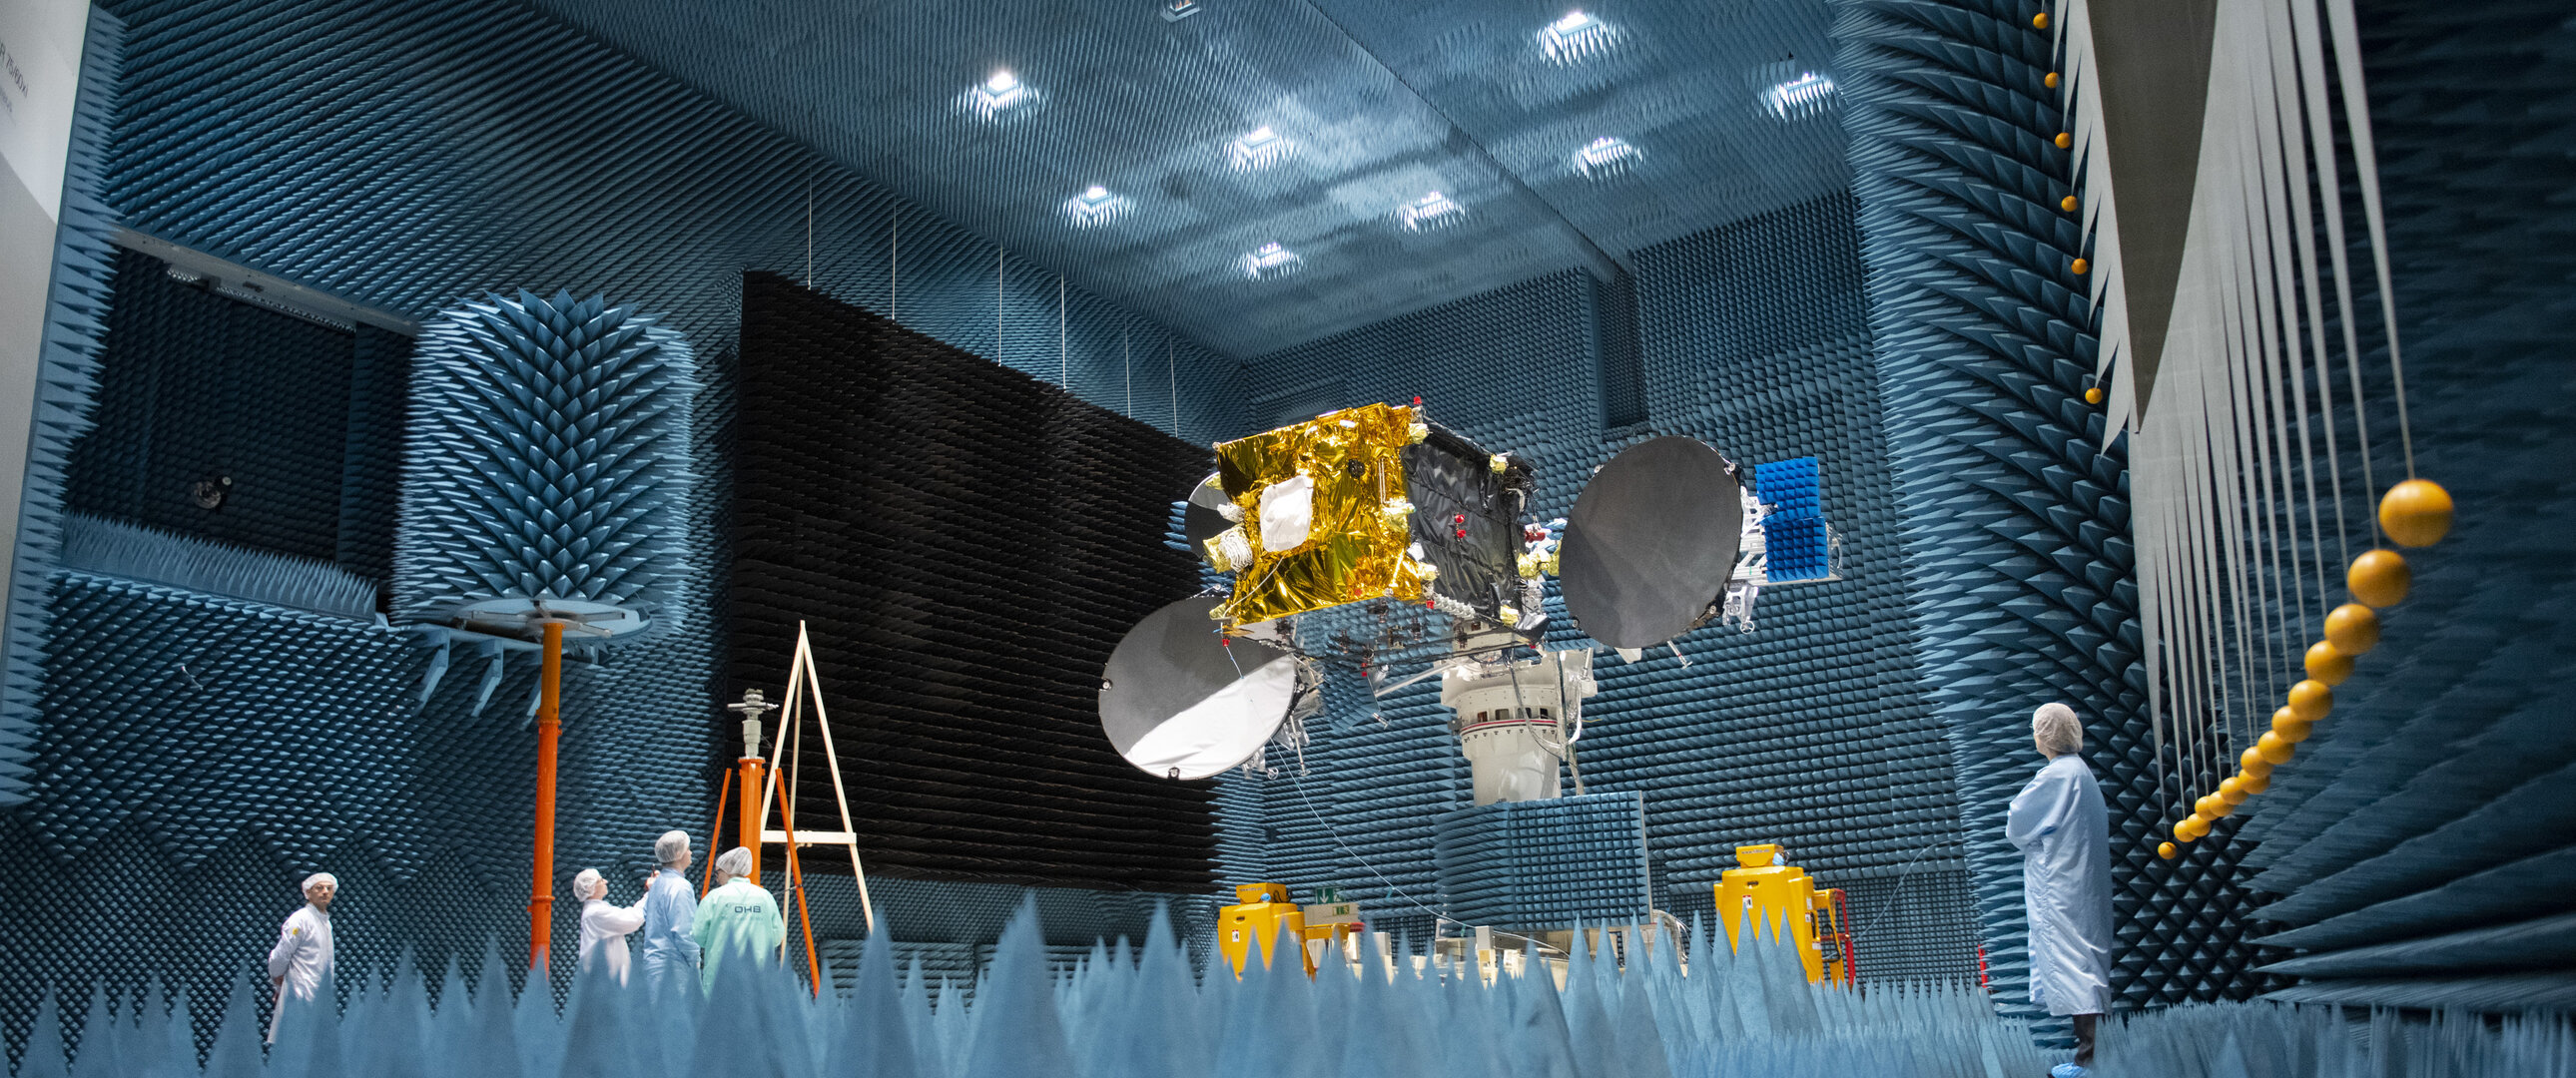 EDRS-C in Airbus's Compact Antenna Test Range facility